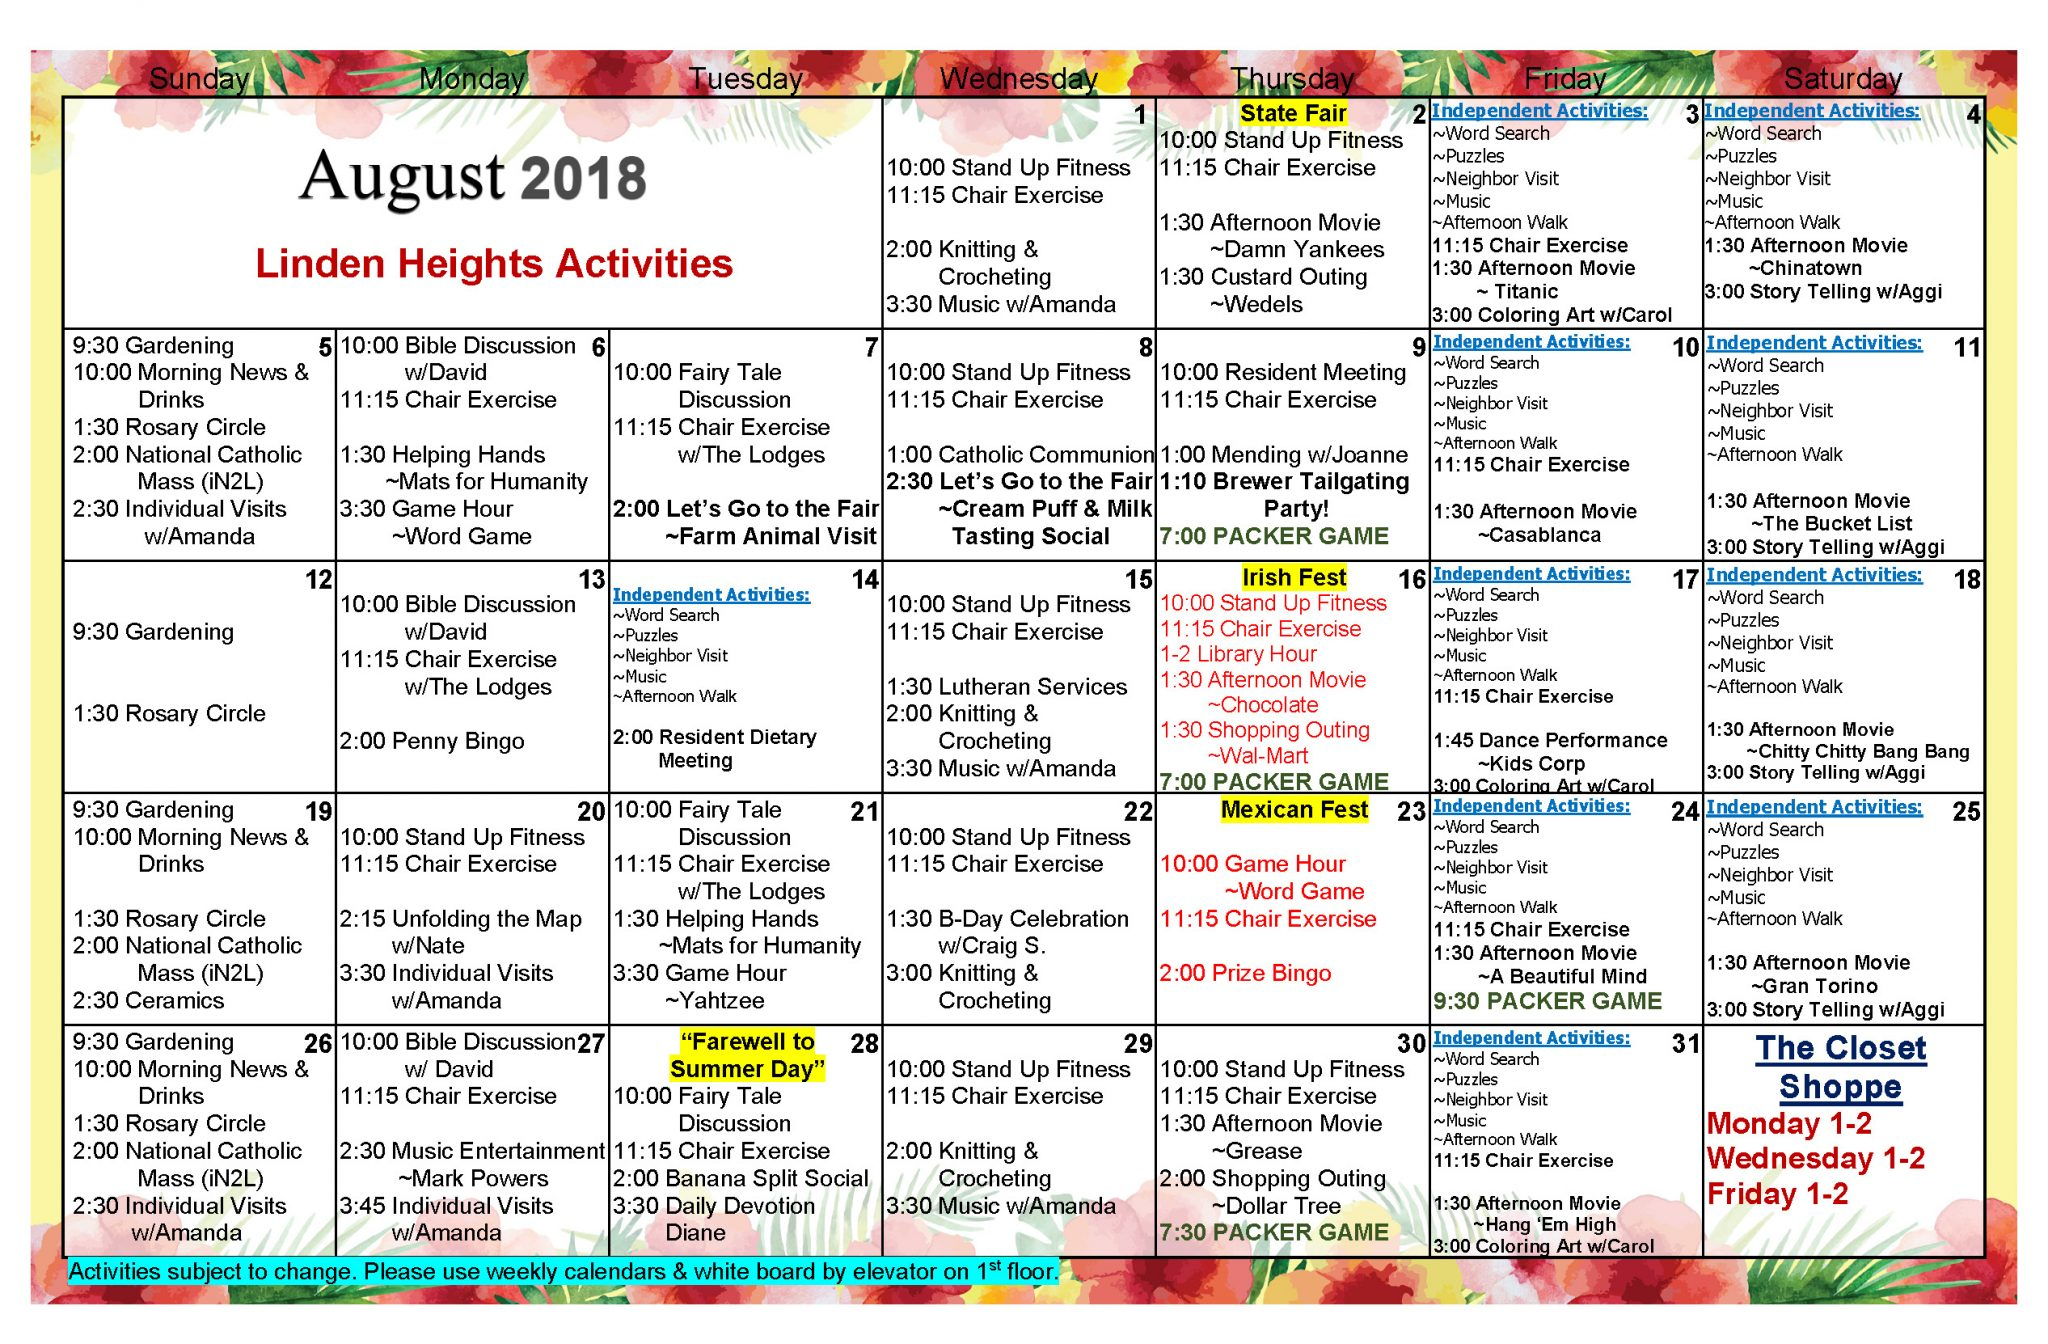 Waukesha Assisted Living Activities Calendar August 2018 Pertaining To Assisted Living Activity Calendar Format